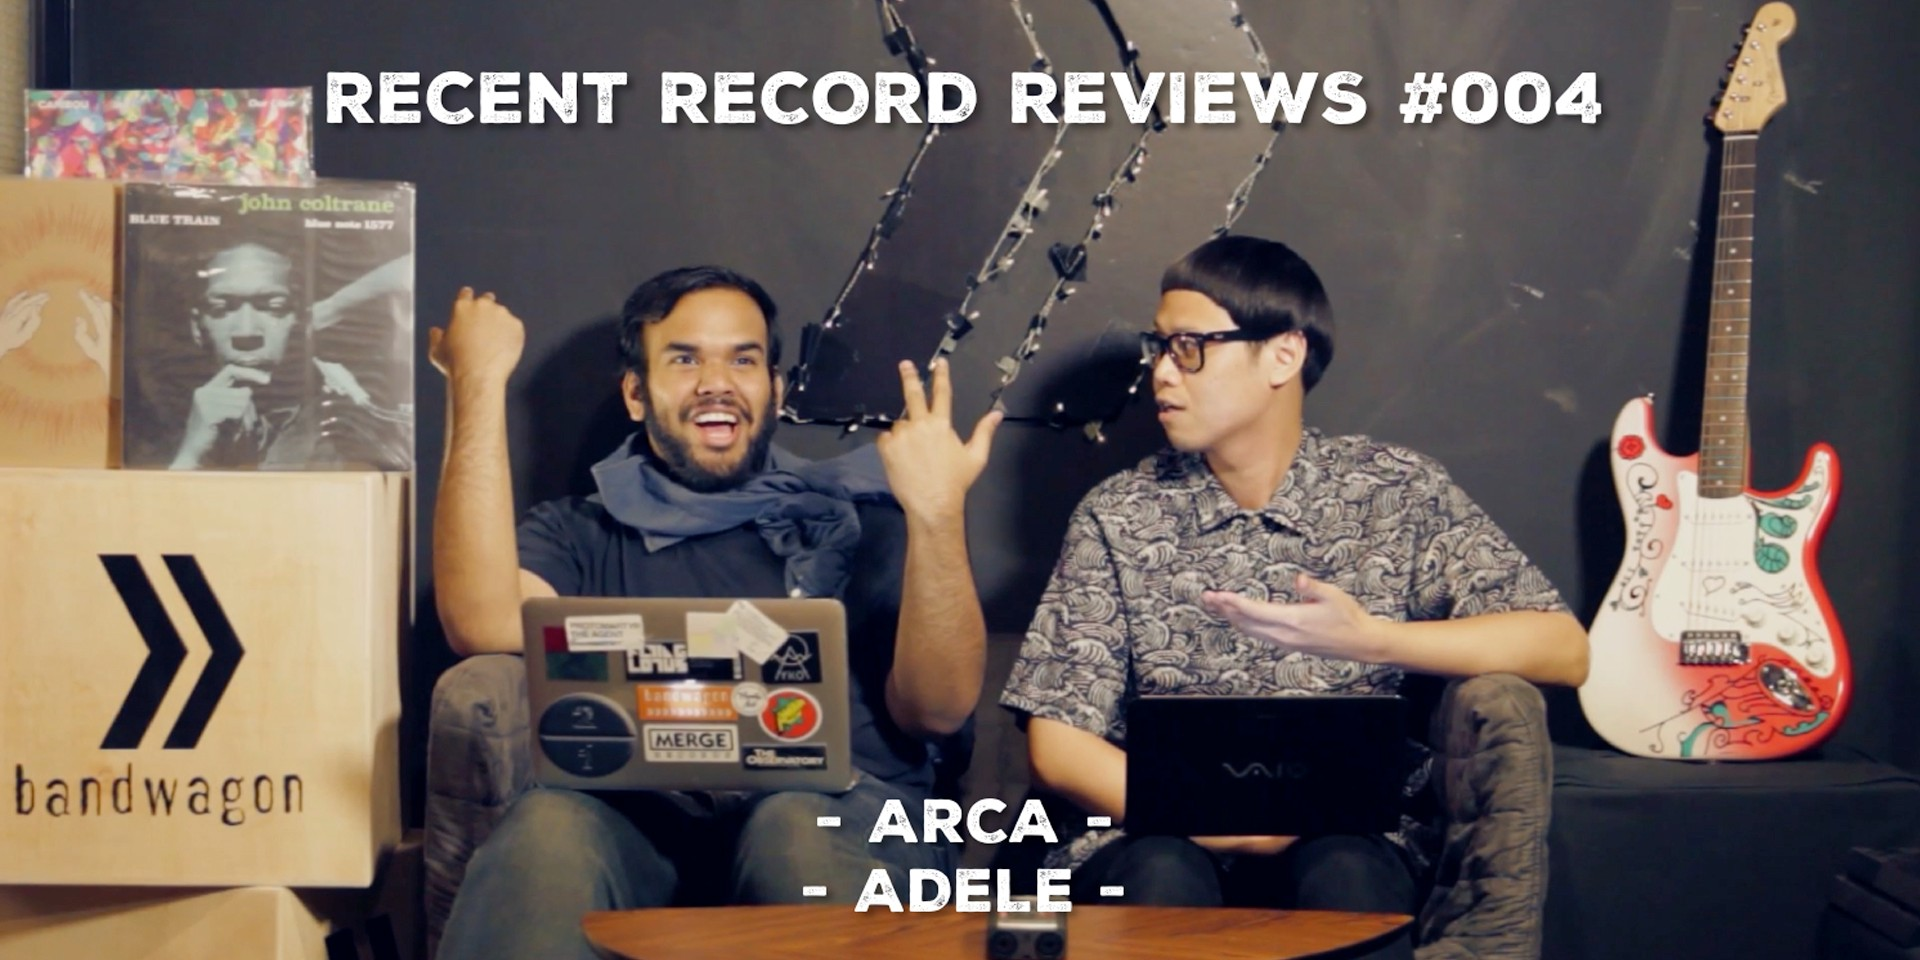 WATCH: Bandwagon Recent Record Reviews #004 - Arca, Adele